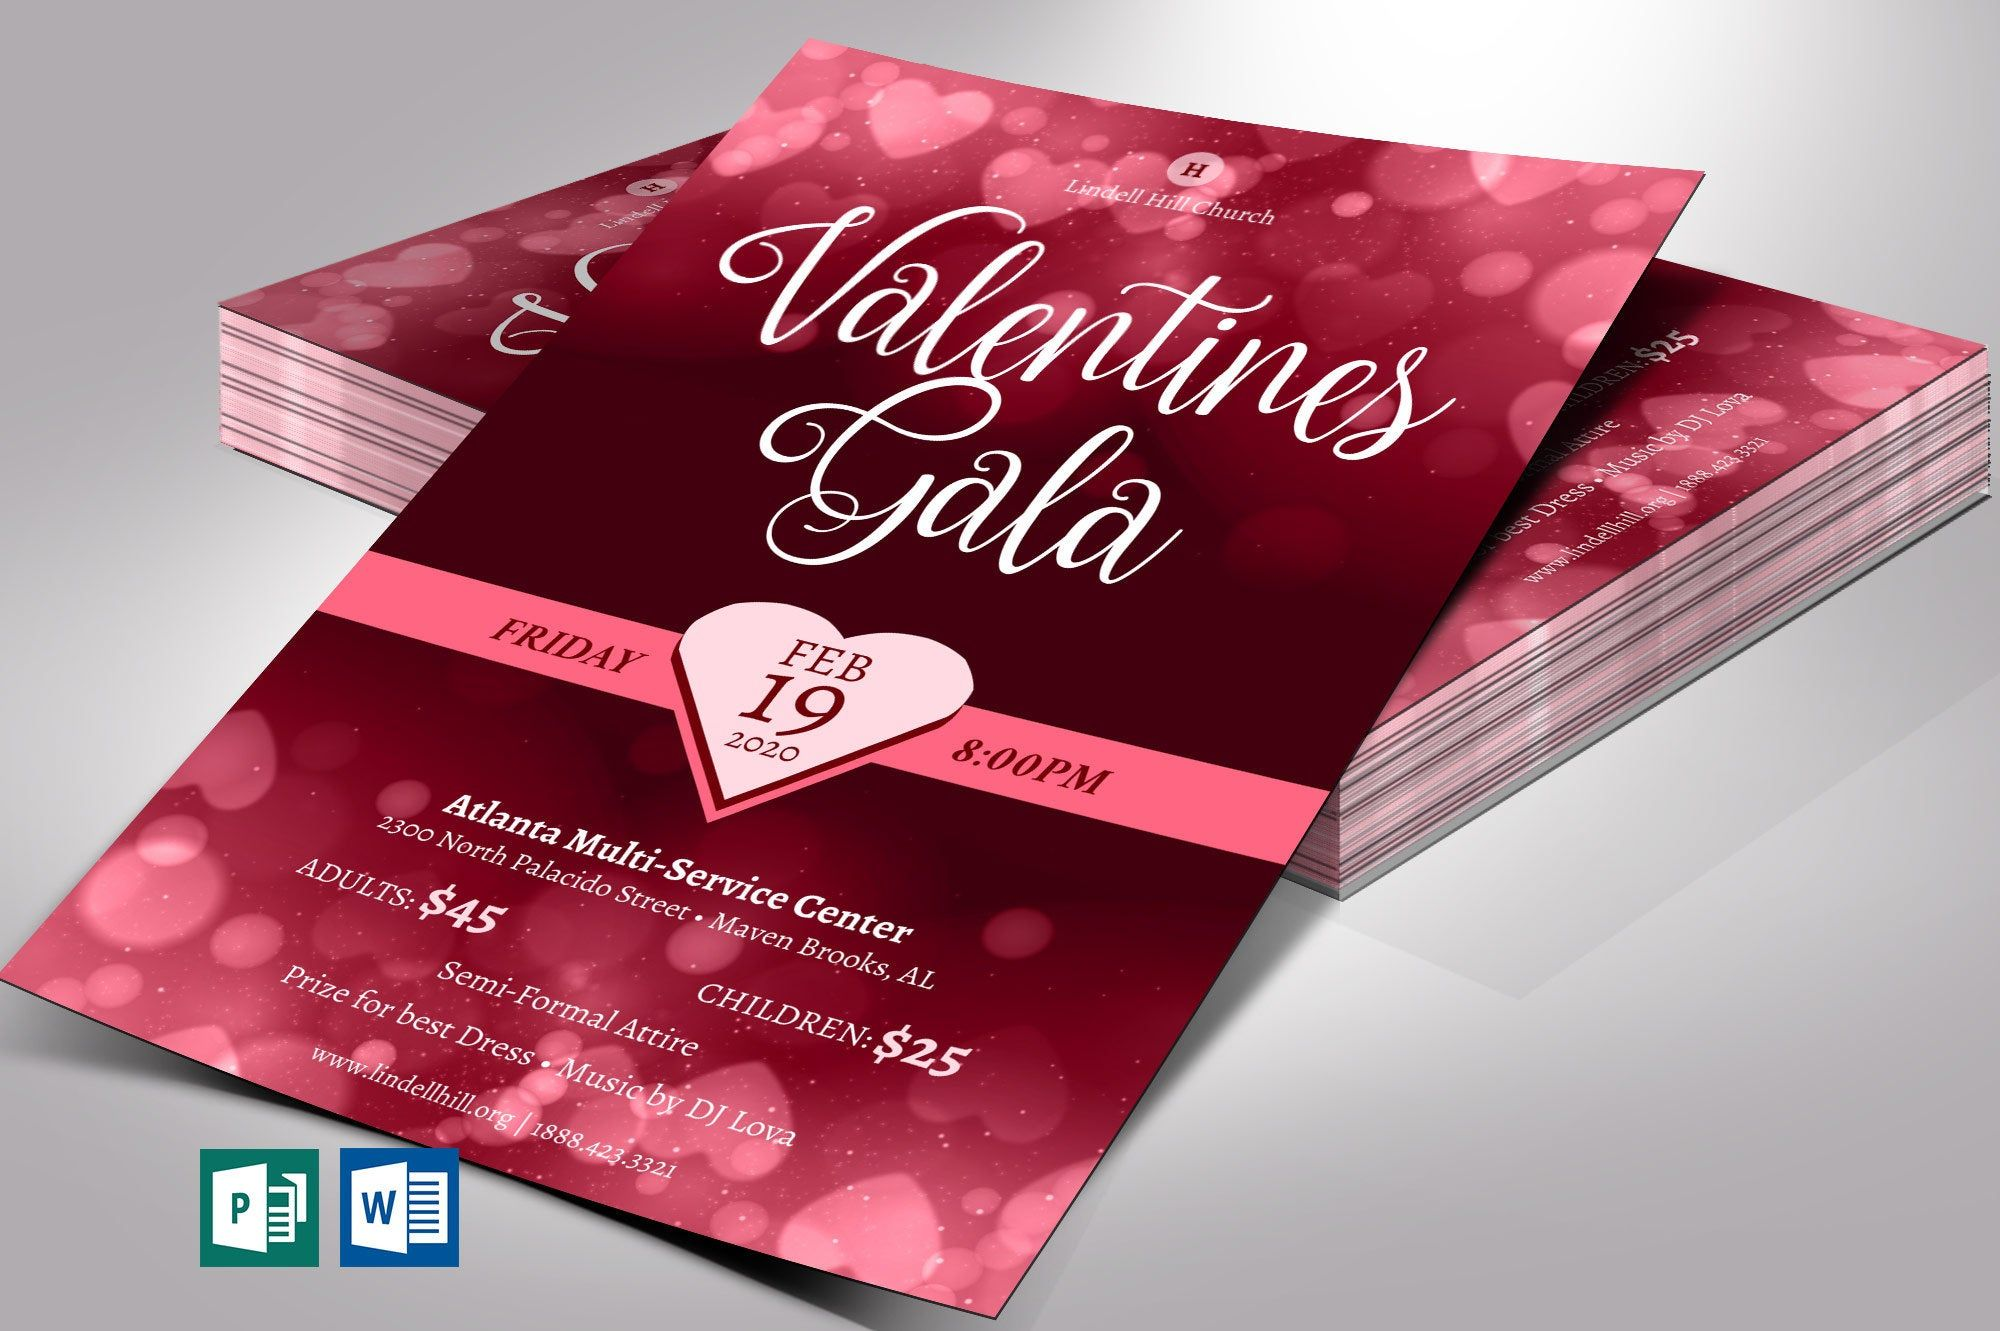 Valentines Gala Flyer Word Publisher Template 1 Sided Size 4 X6 Pinkhearts Noprofitevent Officeparty Galatea In 2020 Publisher Templates Flyer Print Templates